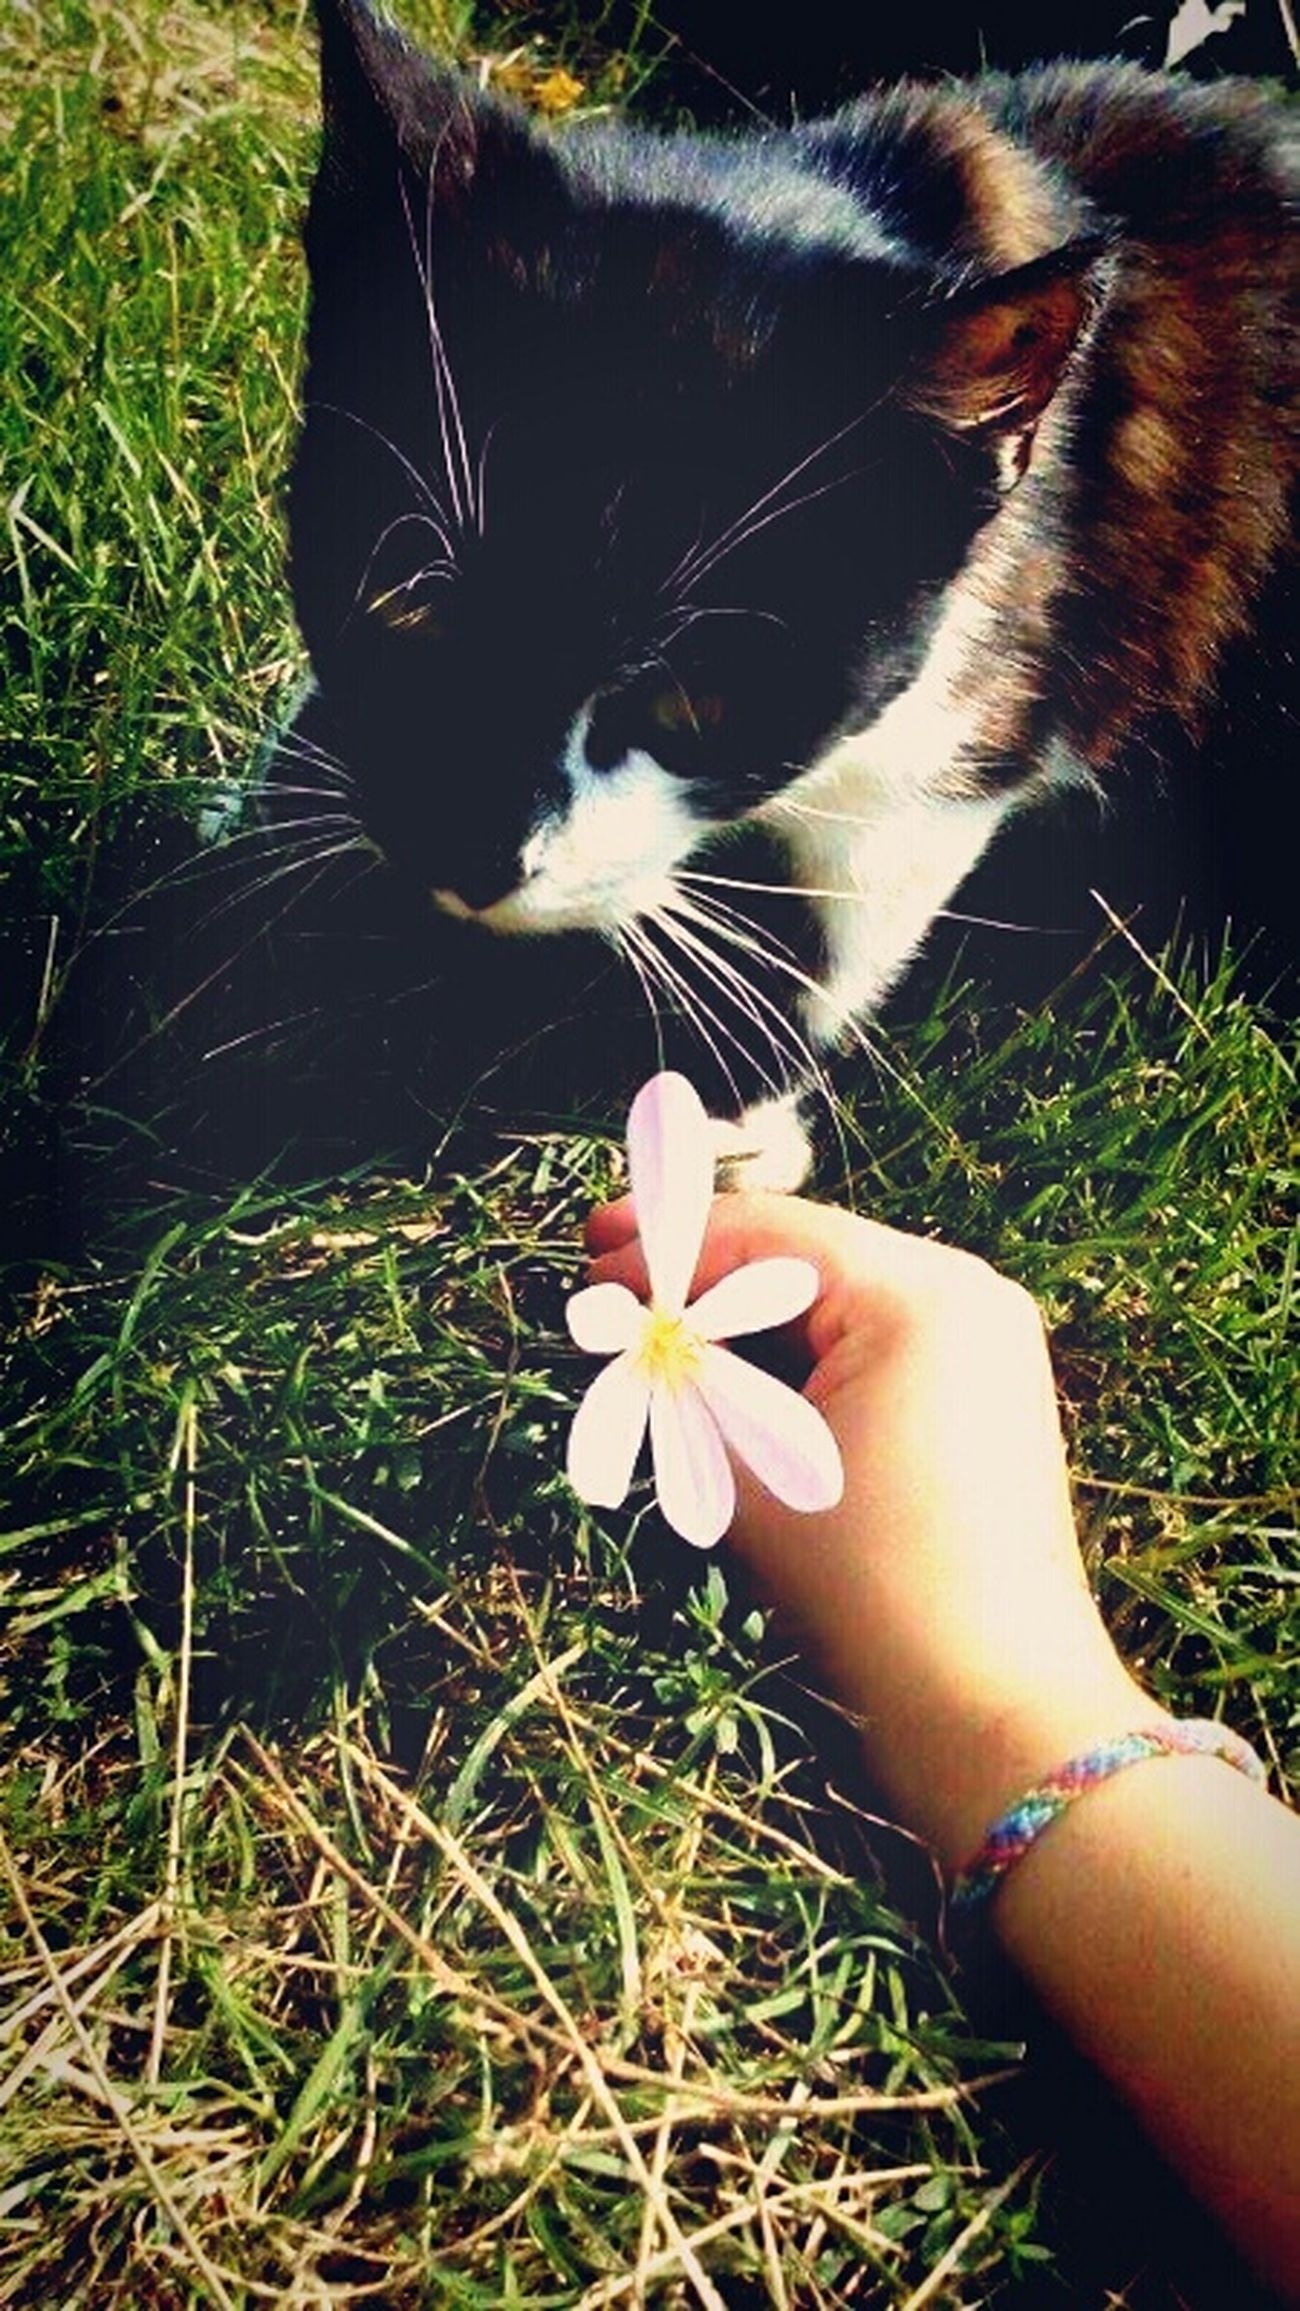 Cat♡ Cat Lovers Flowers,Plants & Garden Flowers Chilling Whit My Love <3